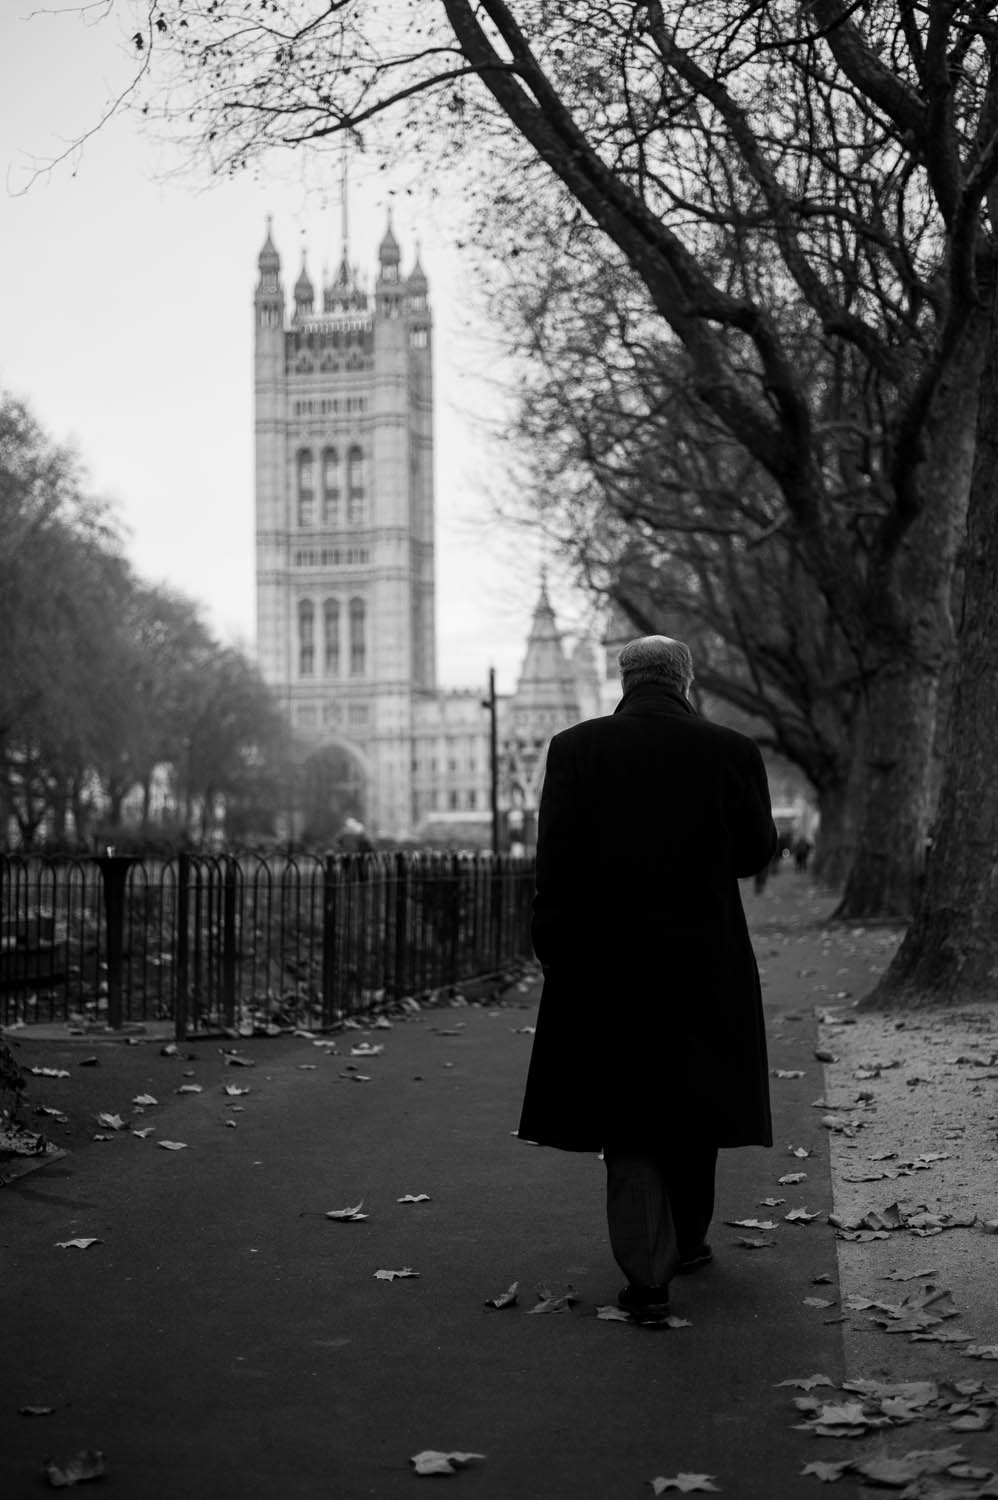 A man in a long coat walks along a path near the thames